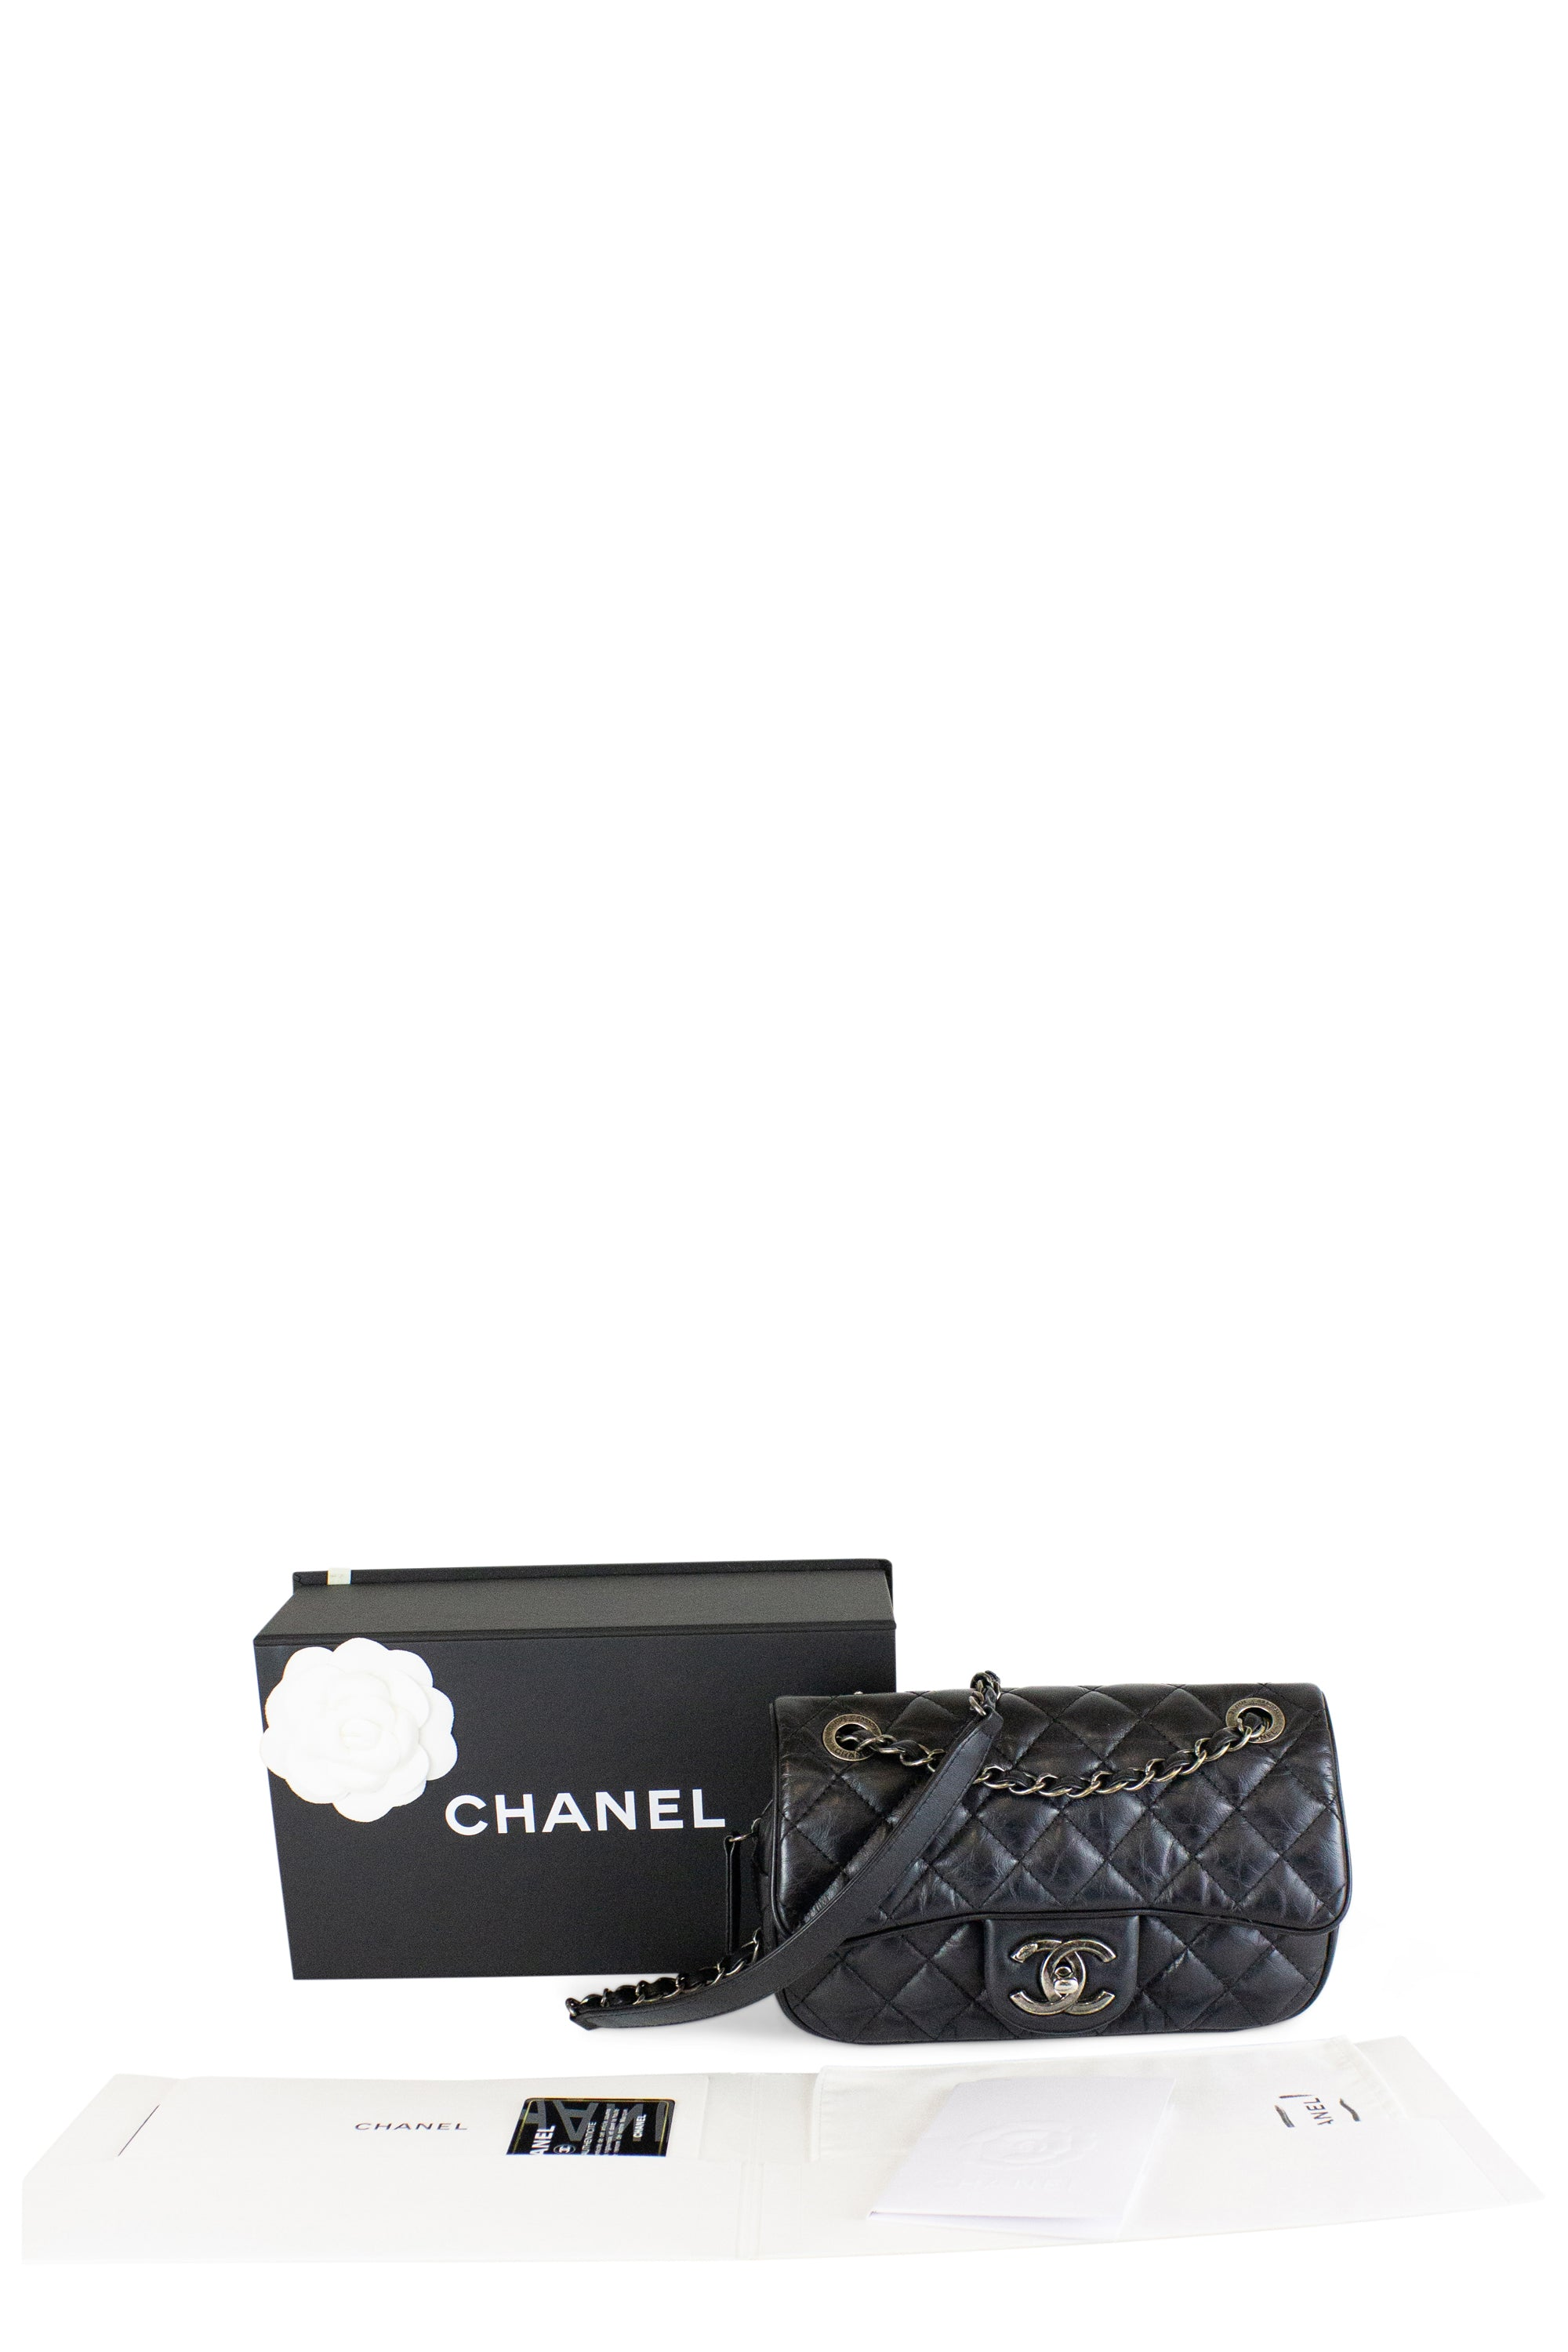 Chanel One Flap Crossbody Bag with Zipper Black